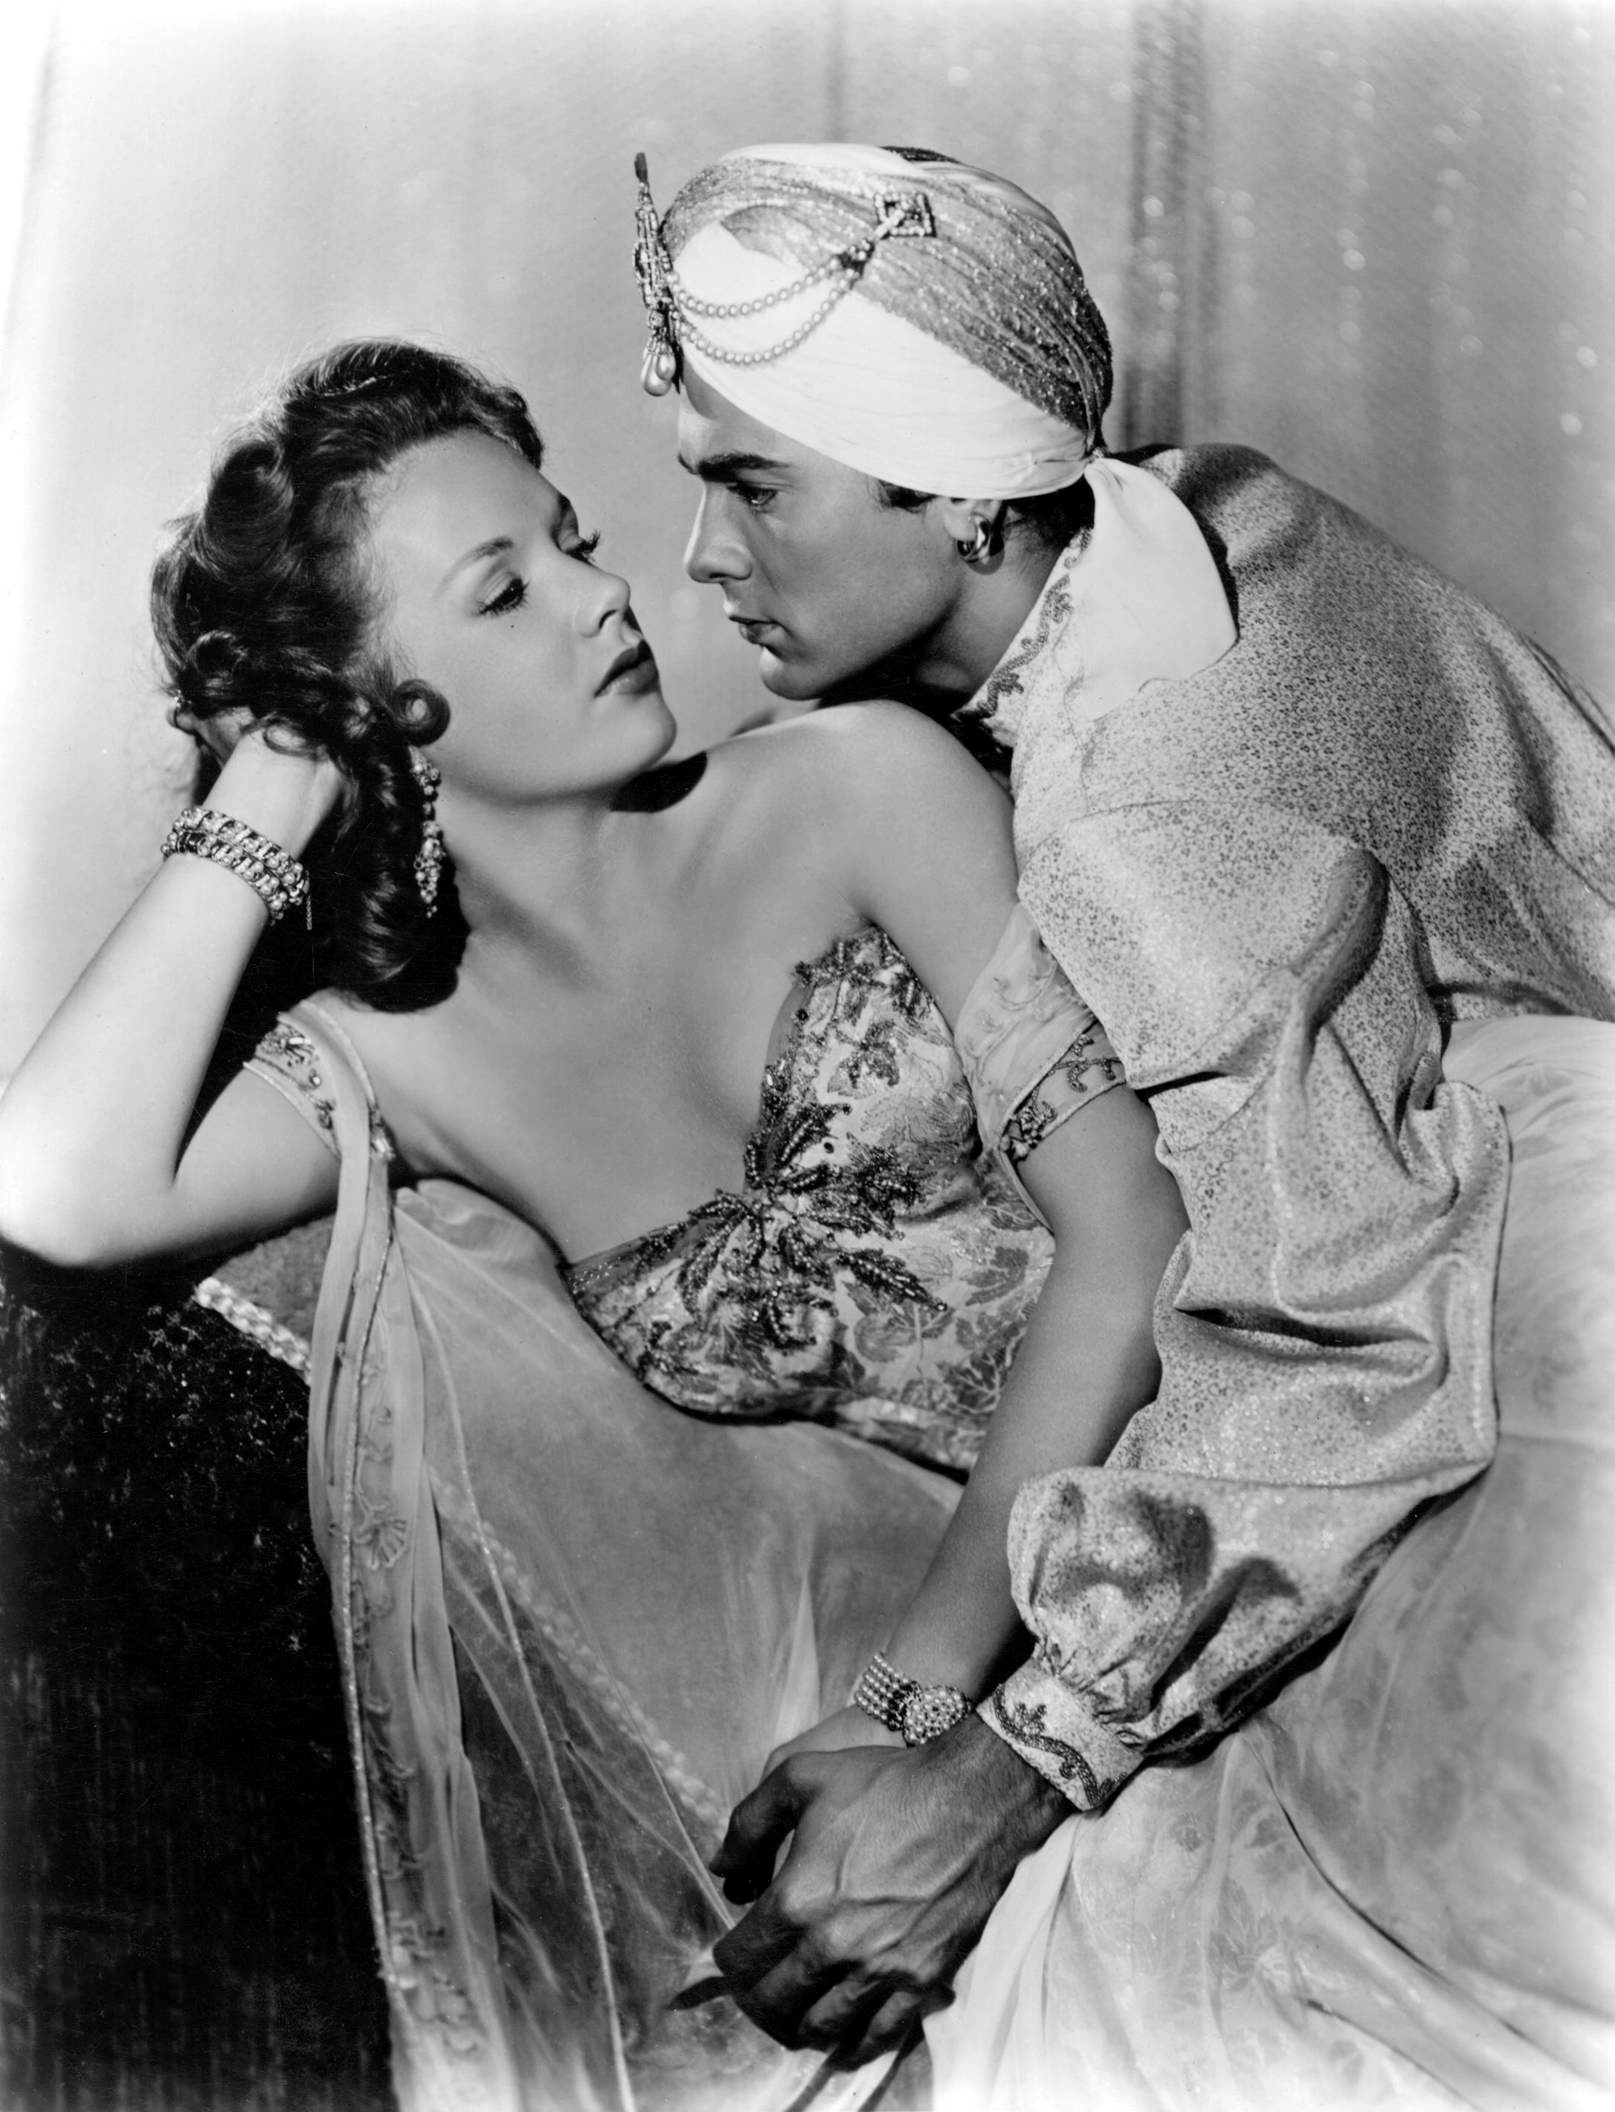 Tony Curtis with Piper Laurie